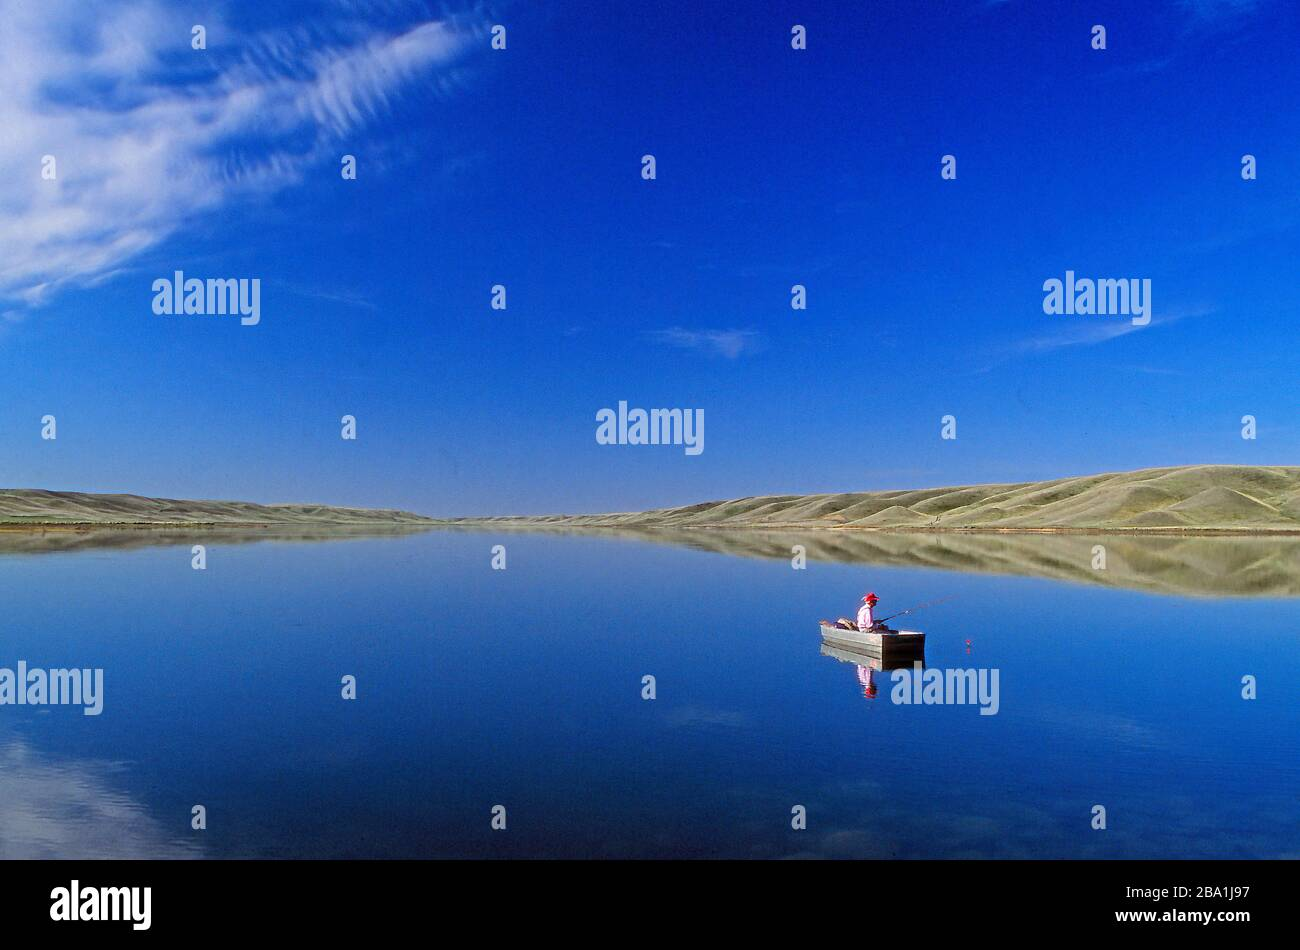 a-man-fishing-in-a-boat-on-the-tranquil-water-of-mcgregor-lake-alberta-canada-2BA1J97.jpg